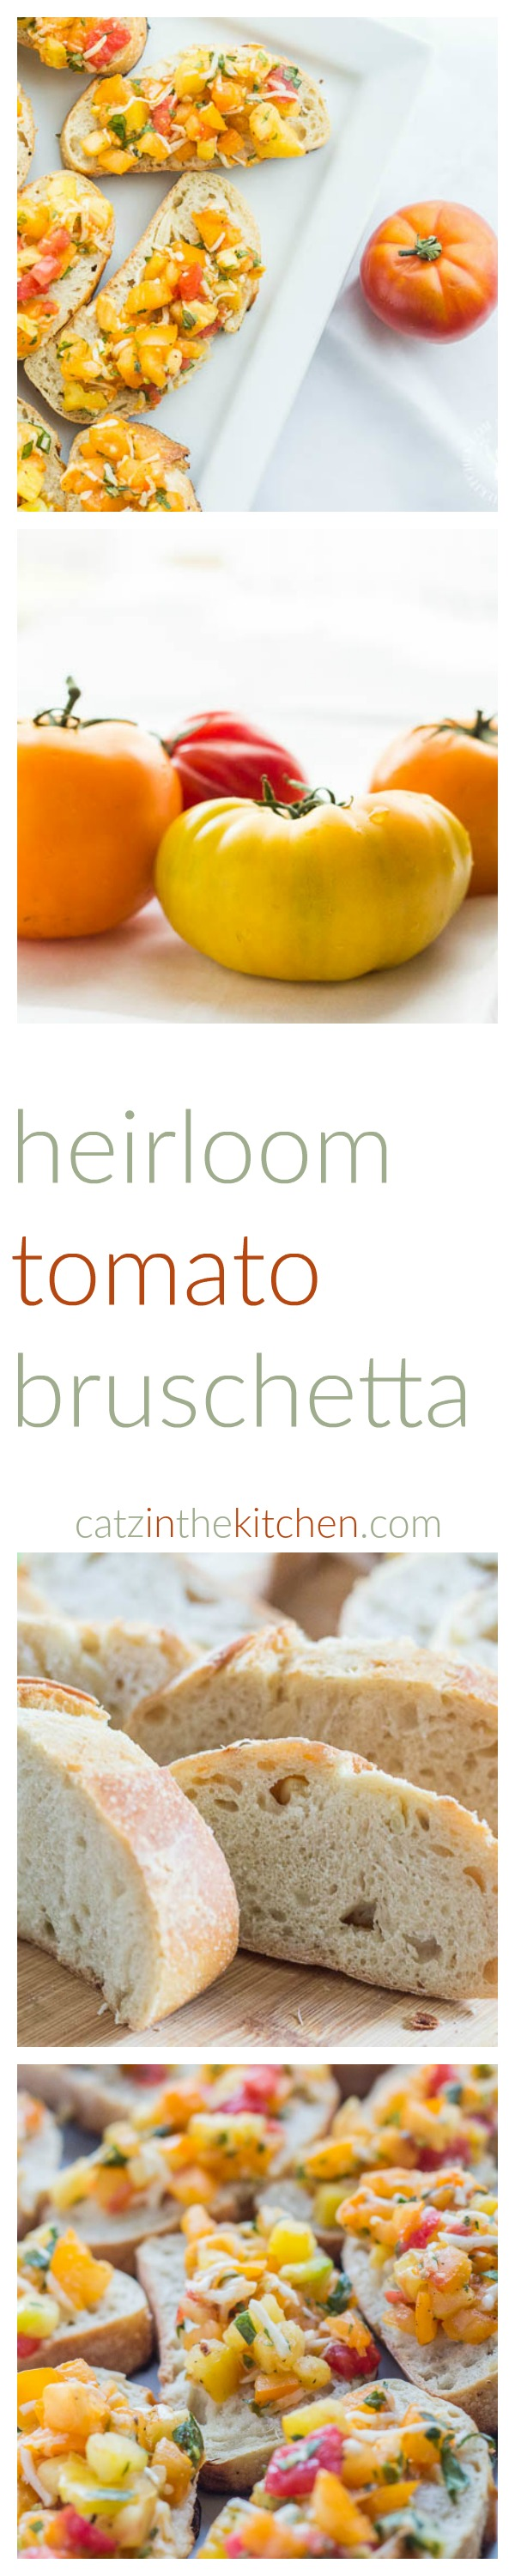 Heirloom Tomato Bruschetta Long Pin